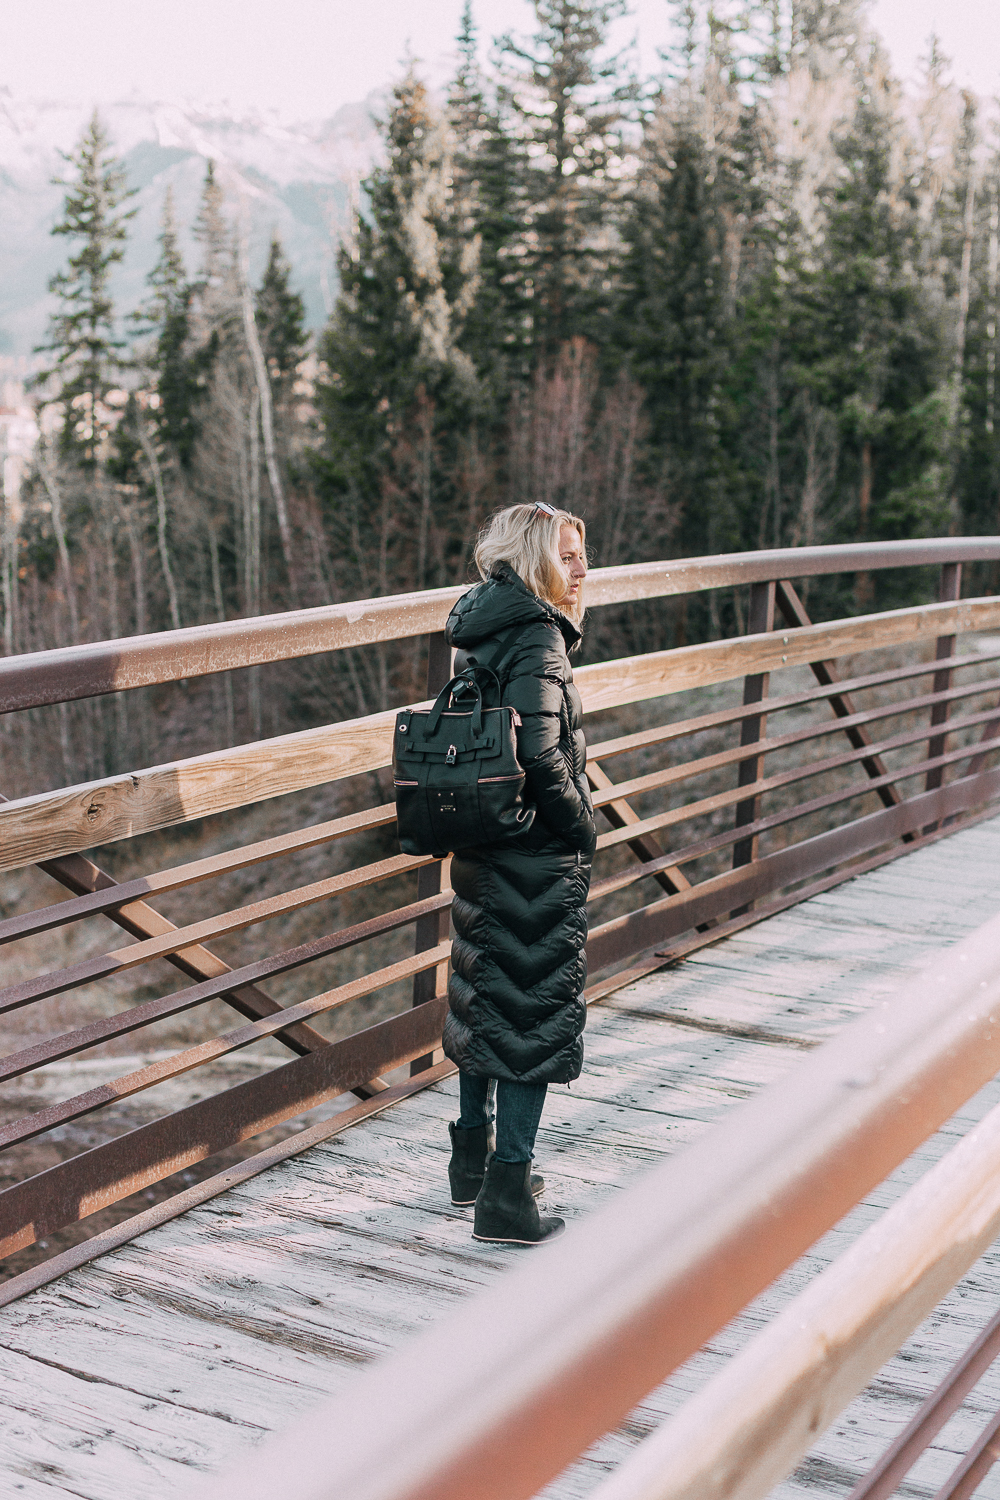 best puffer coats for women by Parajumpers from Bloomingdales in black, long puffer coat paired with dark jeans, black Ugg wedge booties on blonde woman